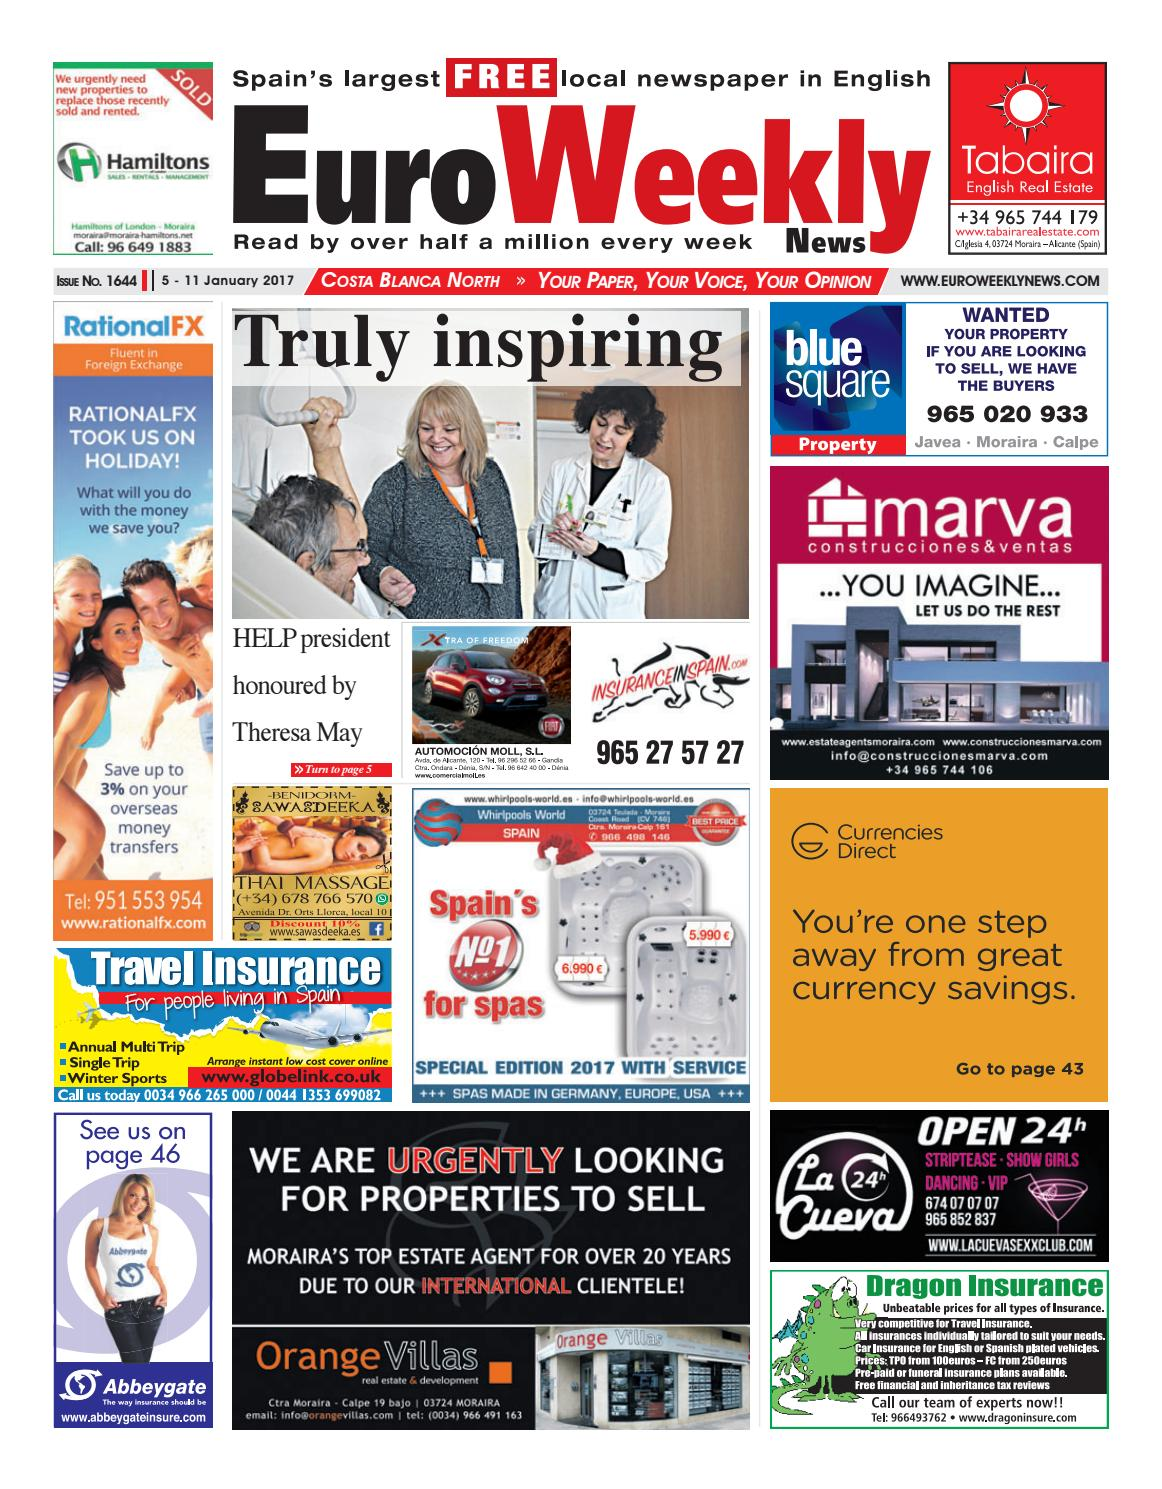 de0a7d4778a Euro Weekly News - Costa Blanca North 5 - 11 January 2017 Issue 1644 ...